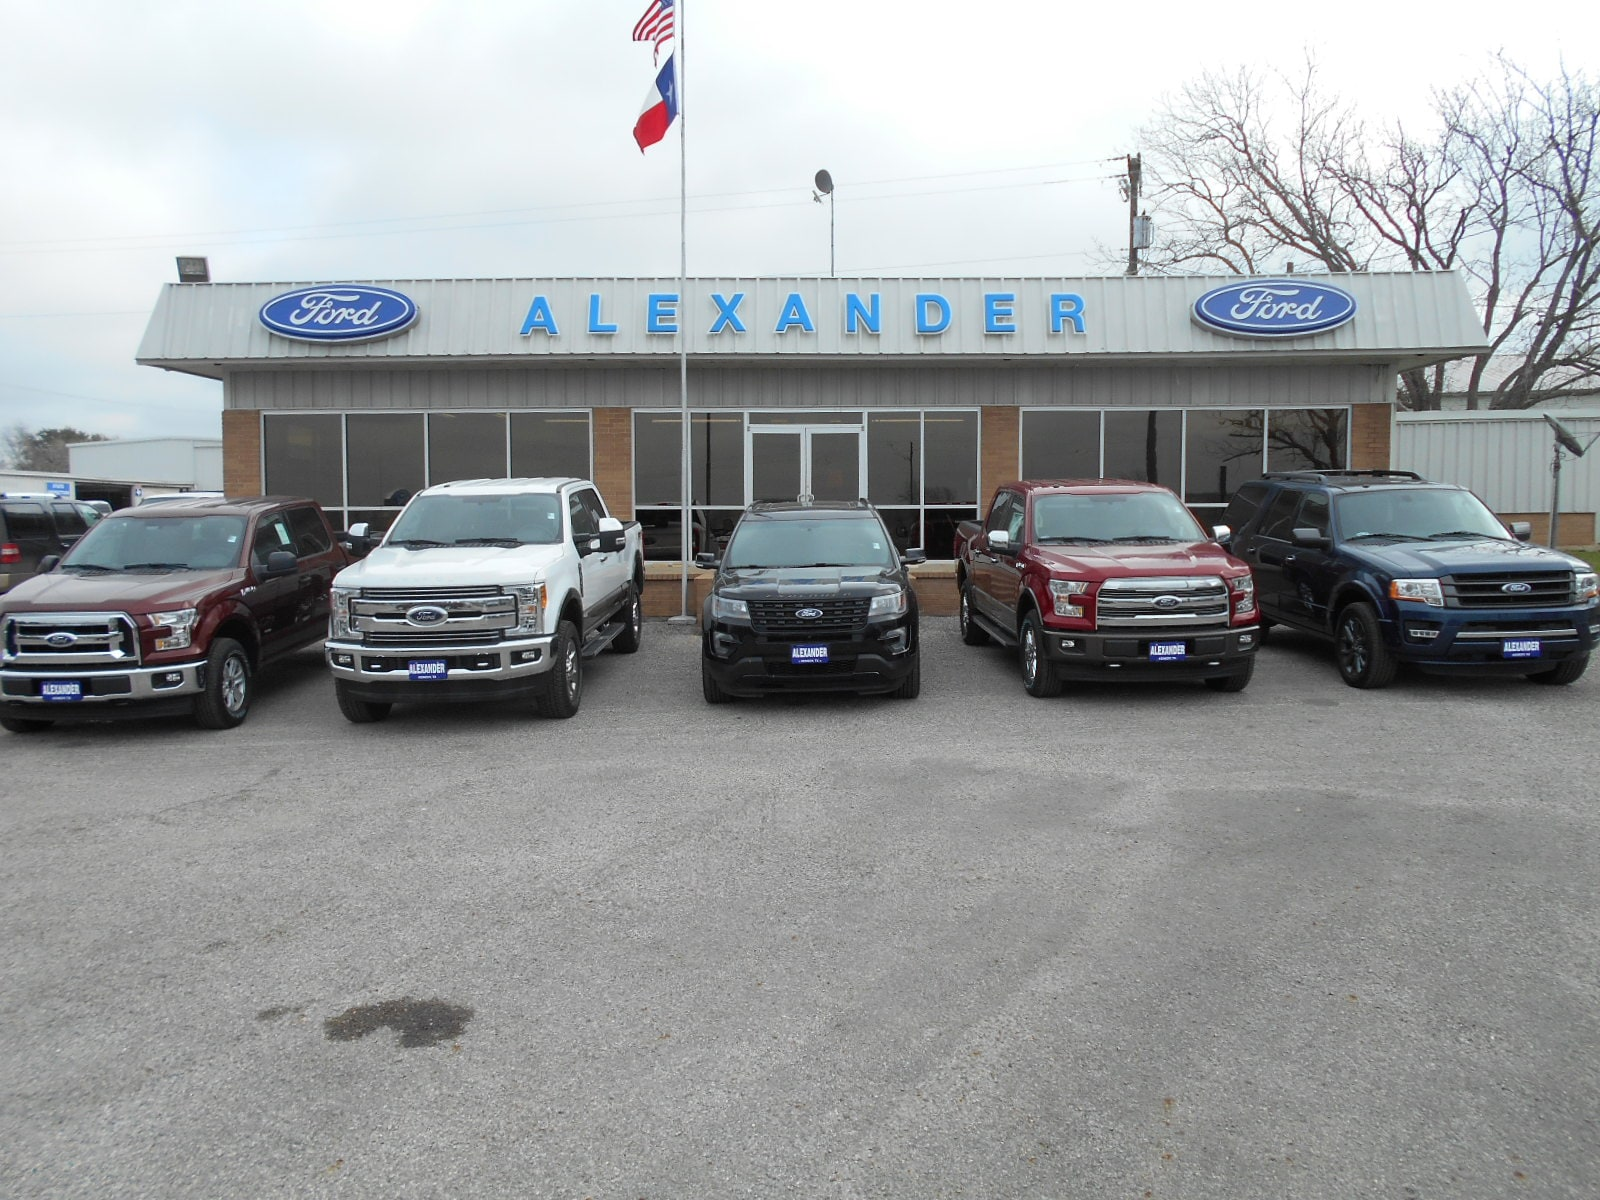 Alexander Ford | New Ford dealership in Kenedy, TX 78119 - photo#22